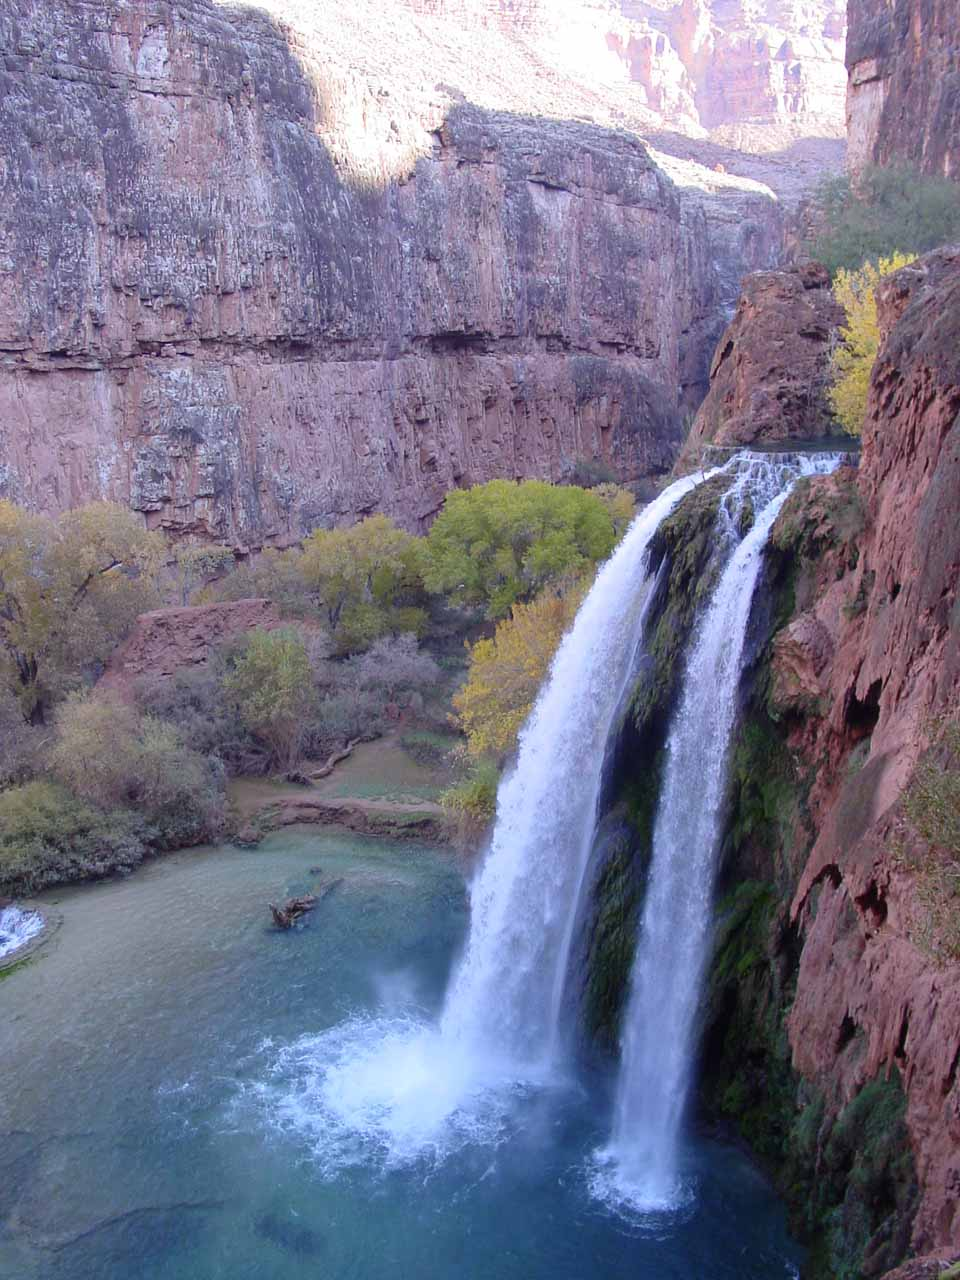 Angled view of Havasu Falls as we descended the trail